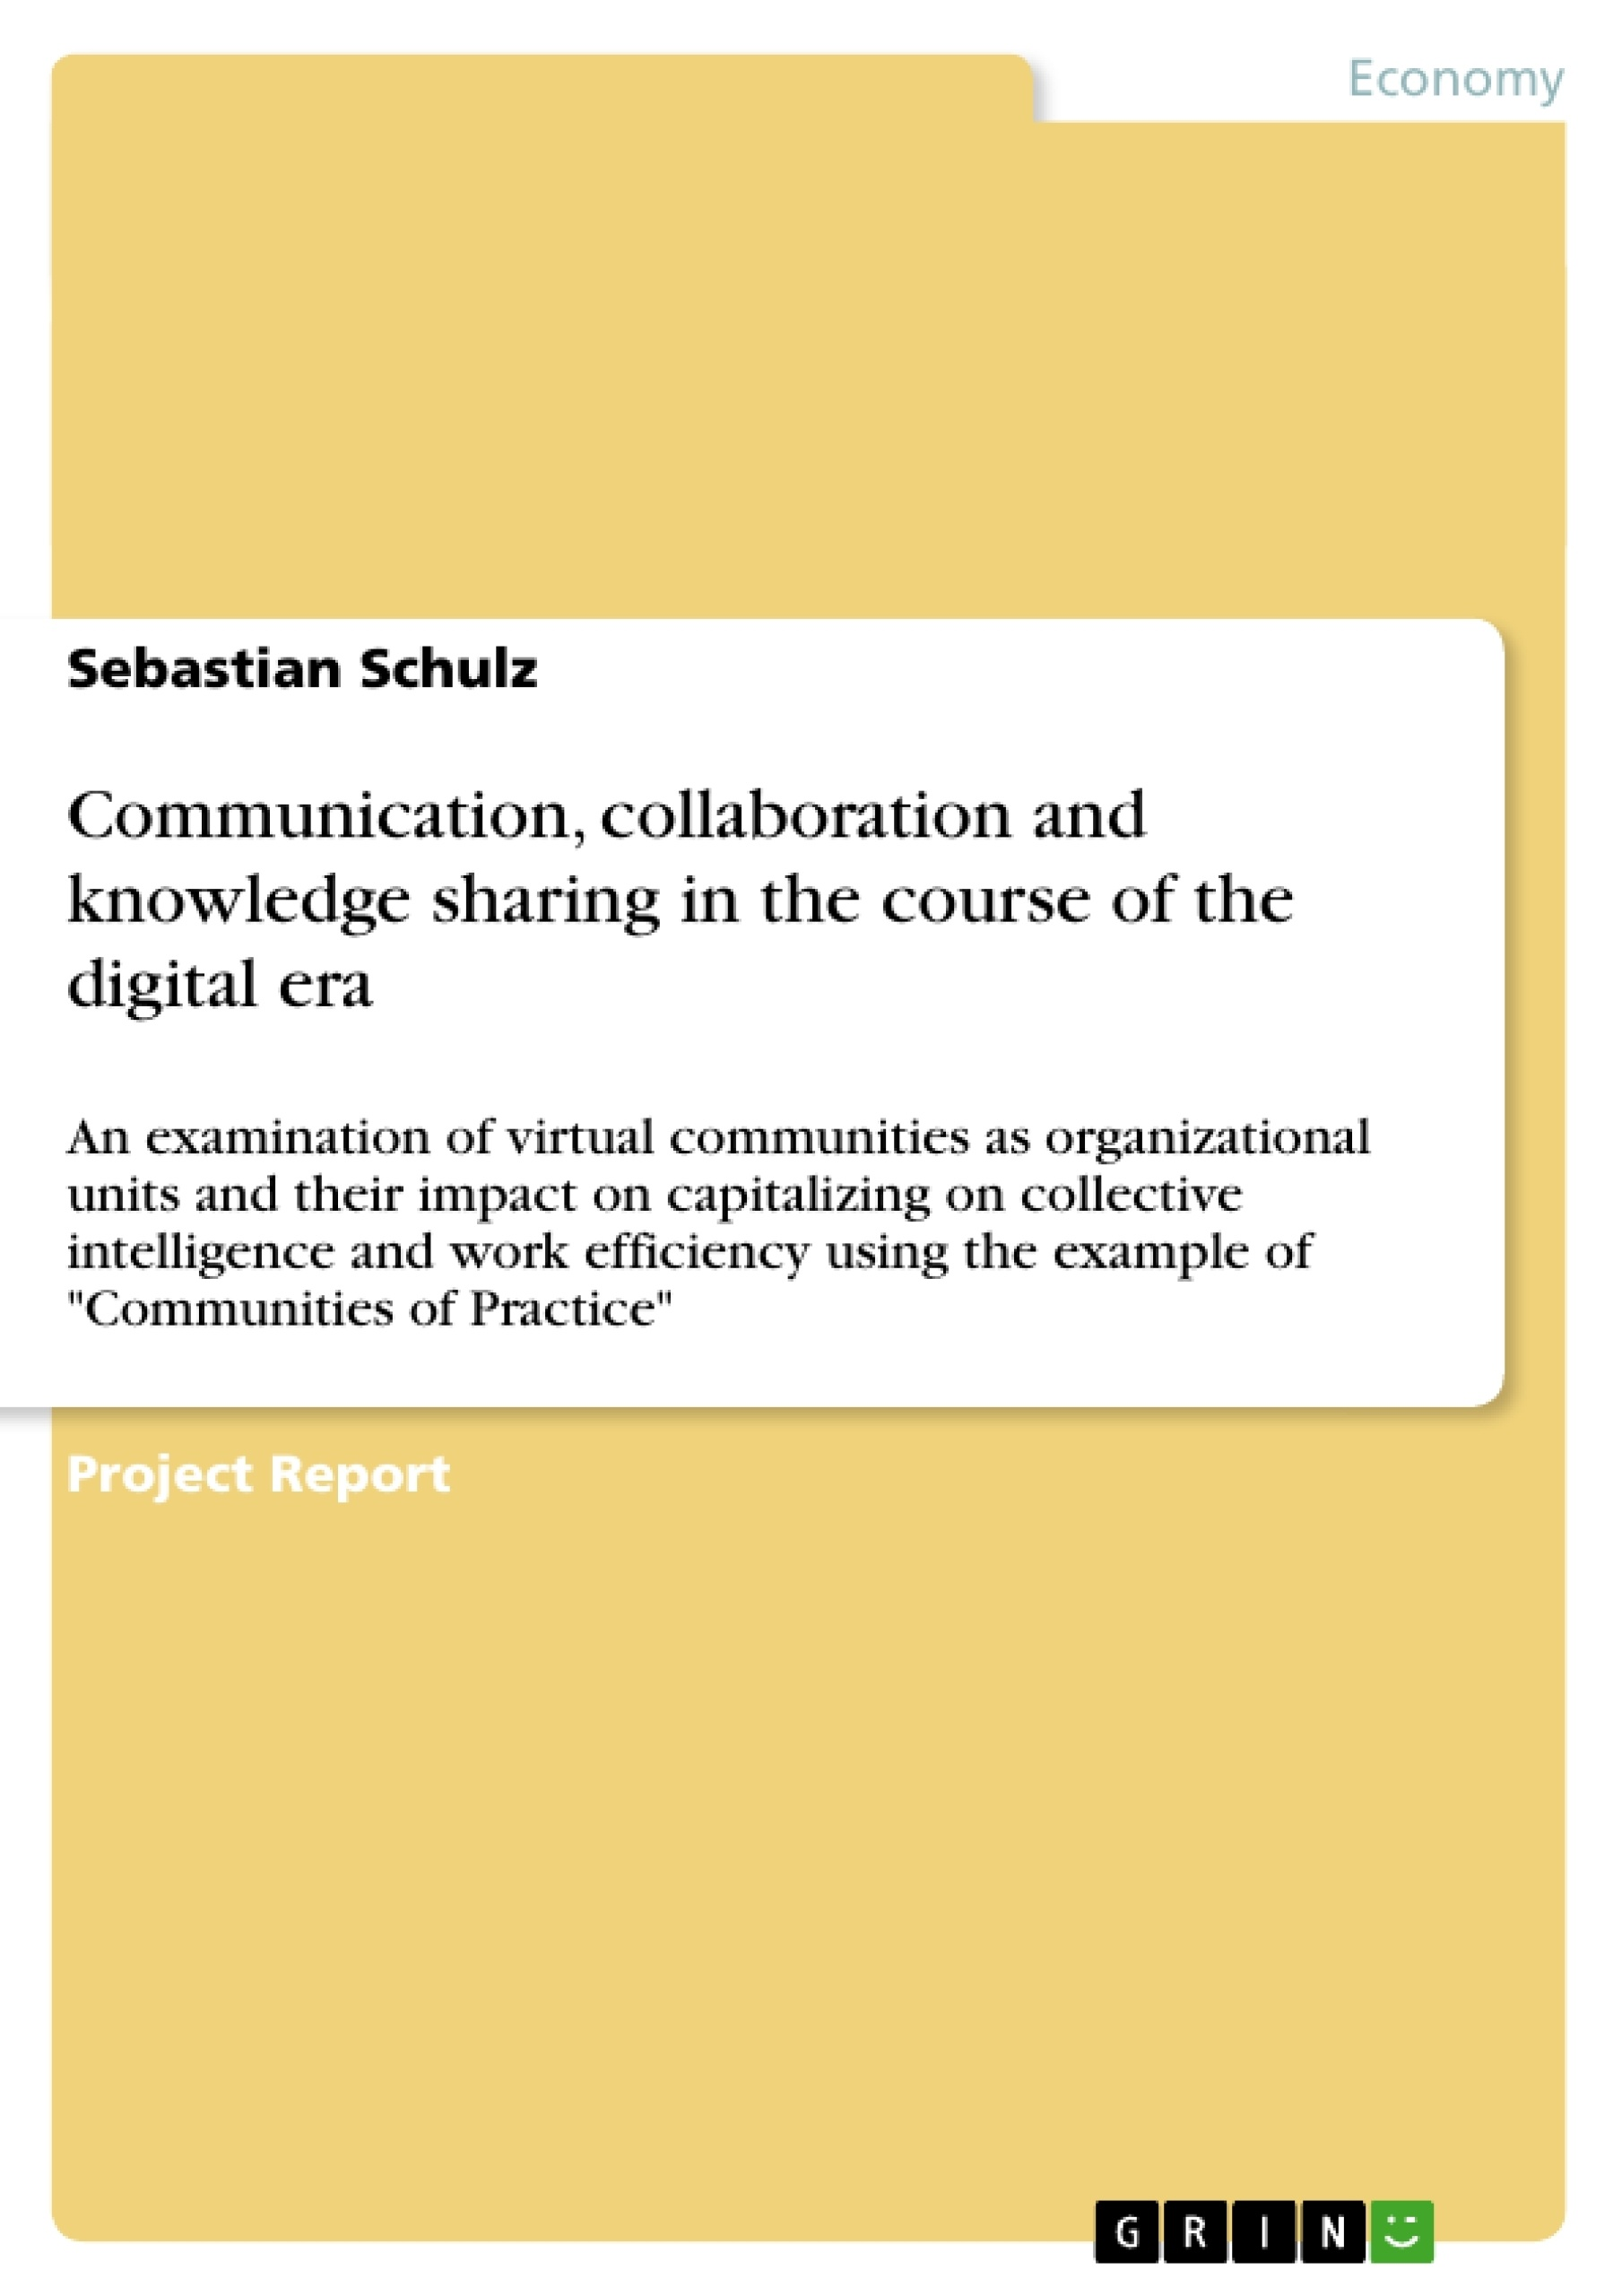 Title: Communication, collaboration and knowledge sharing in the course of the digital era